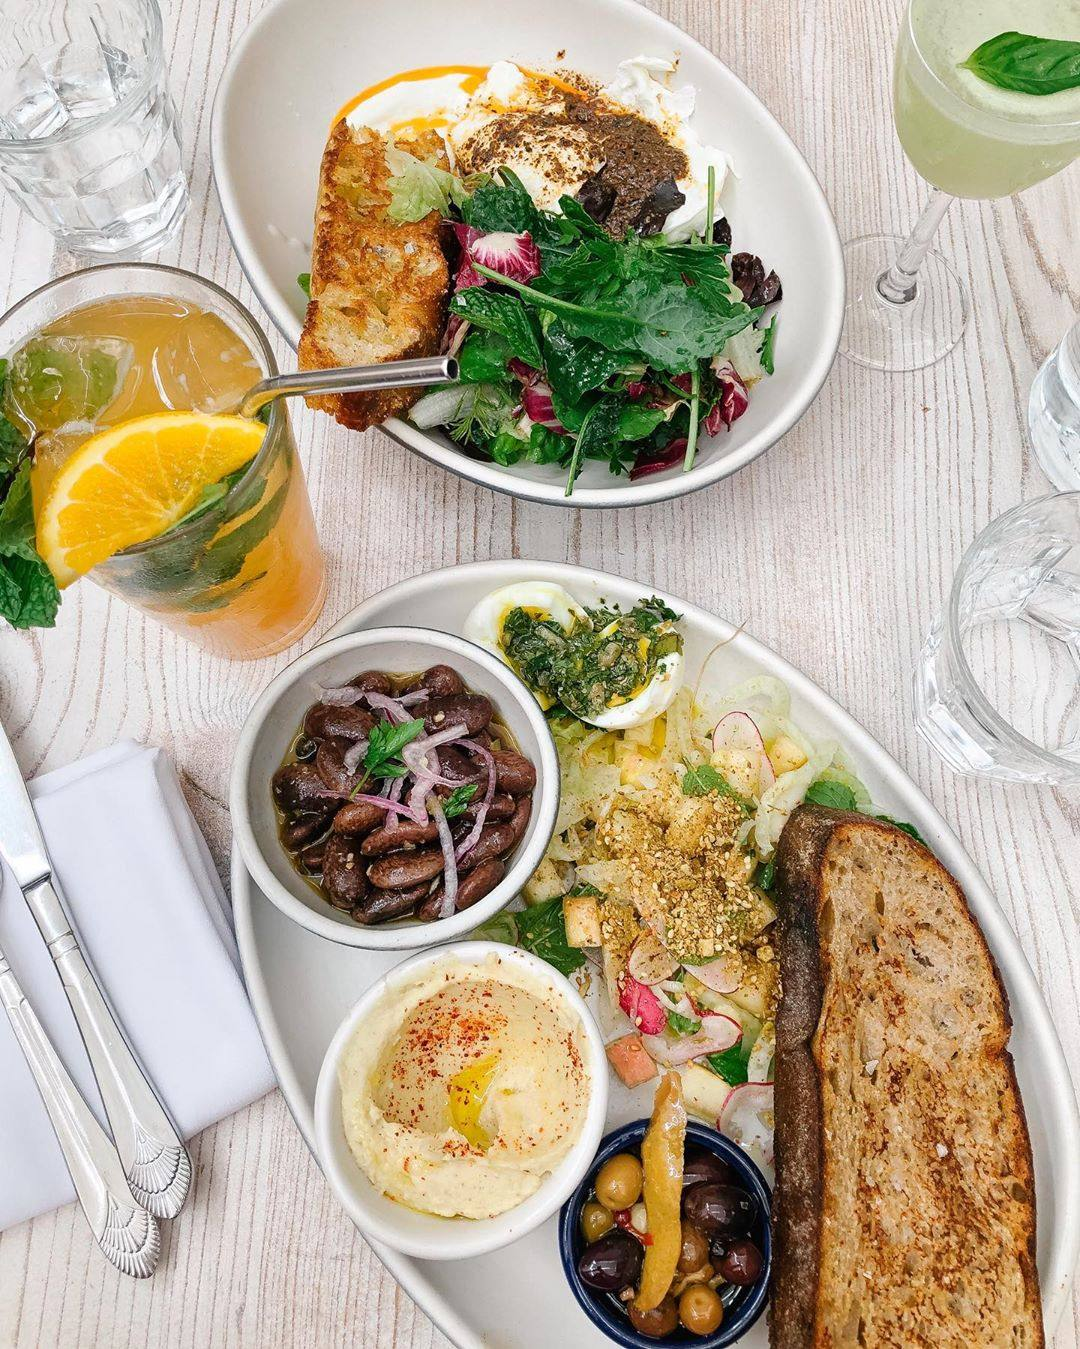 Brunch at Botanica | Photo: @alexandrajoywig, Instagram